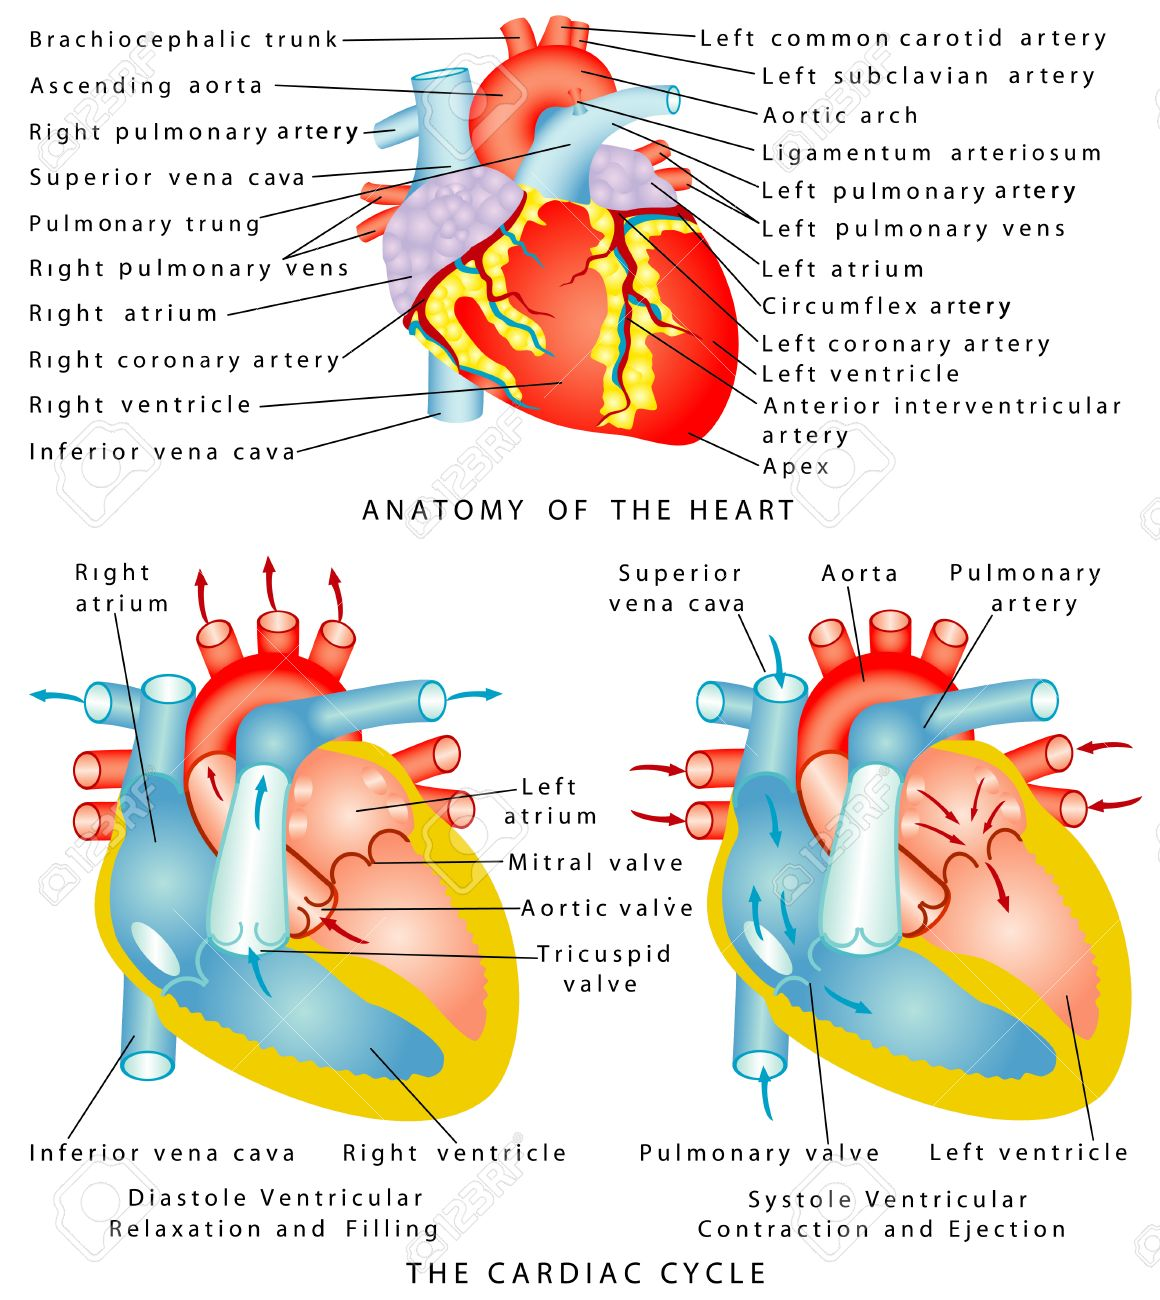 Heart anatomy of the heart the cardiac cycle diastole ventricular heart anatomy of the heart the cardiac cycle diastole ventricular relaxation and filling systole ventricular contraction pooptronica